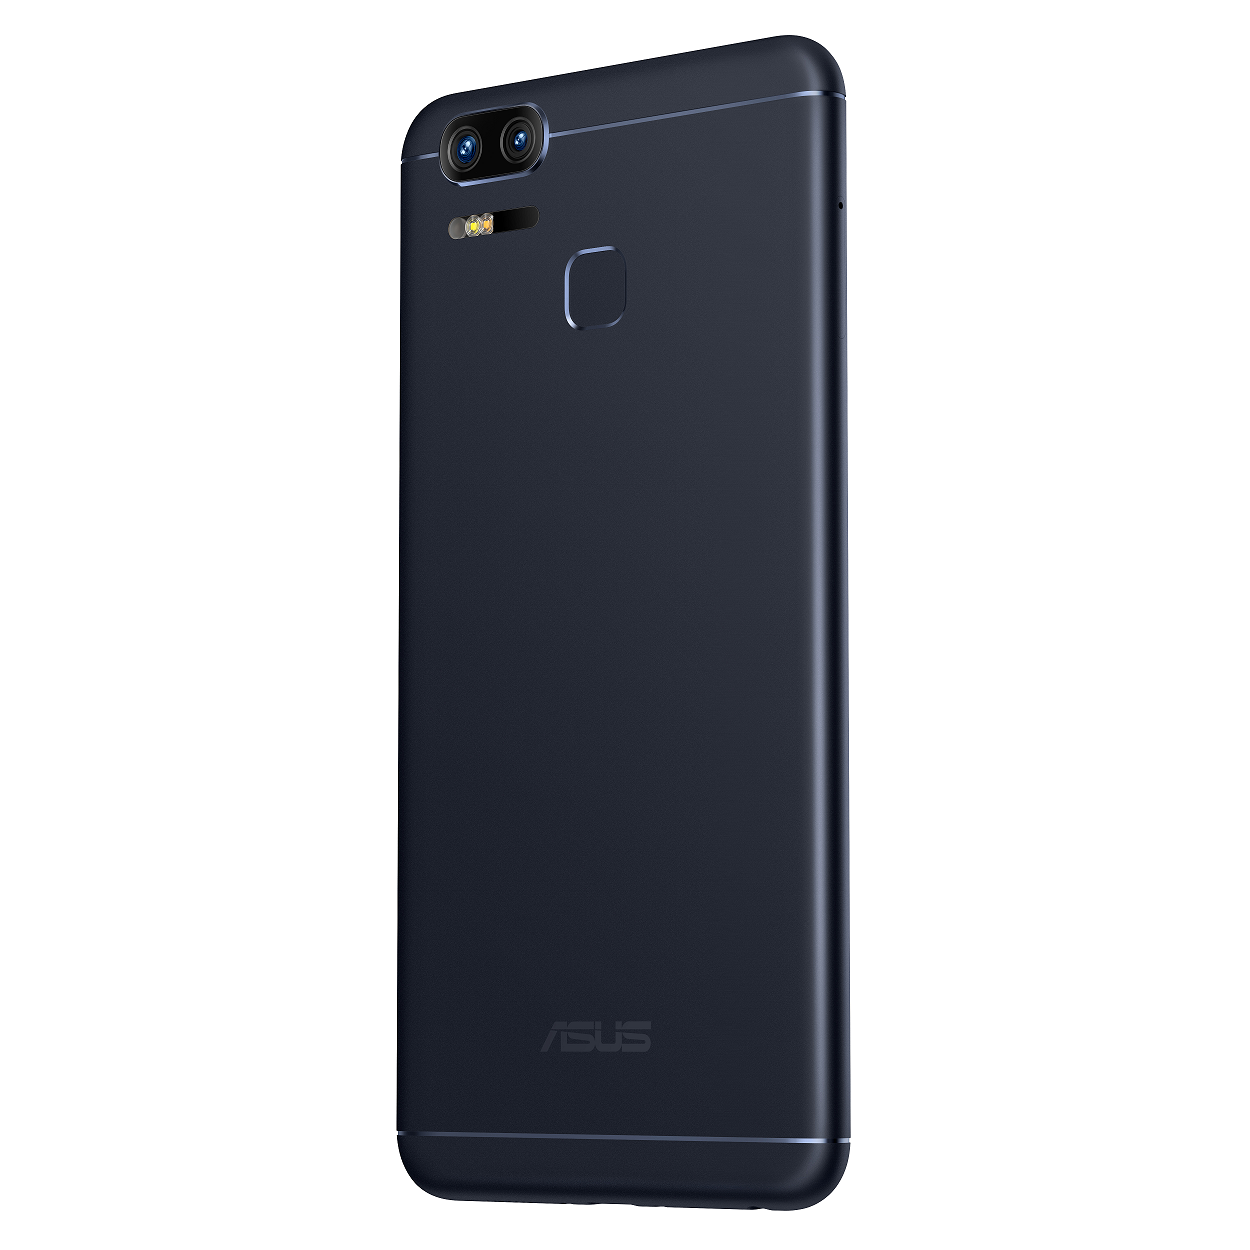 asus zenfone zoom s launched at rs 26 999 android junglee. Black Bedroom Furniture Sets. Home Design Ideas